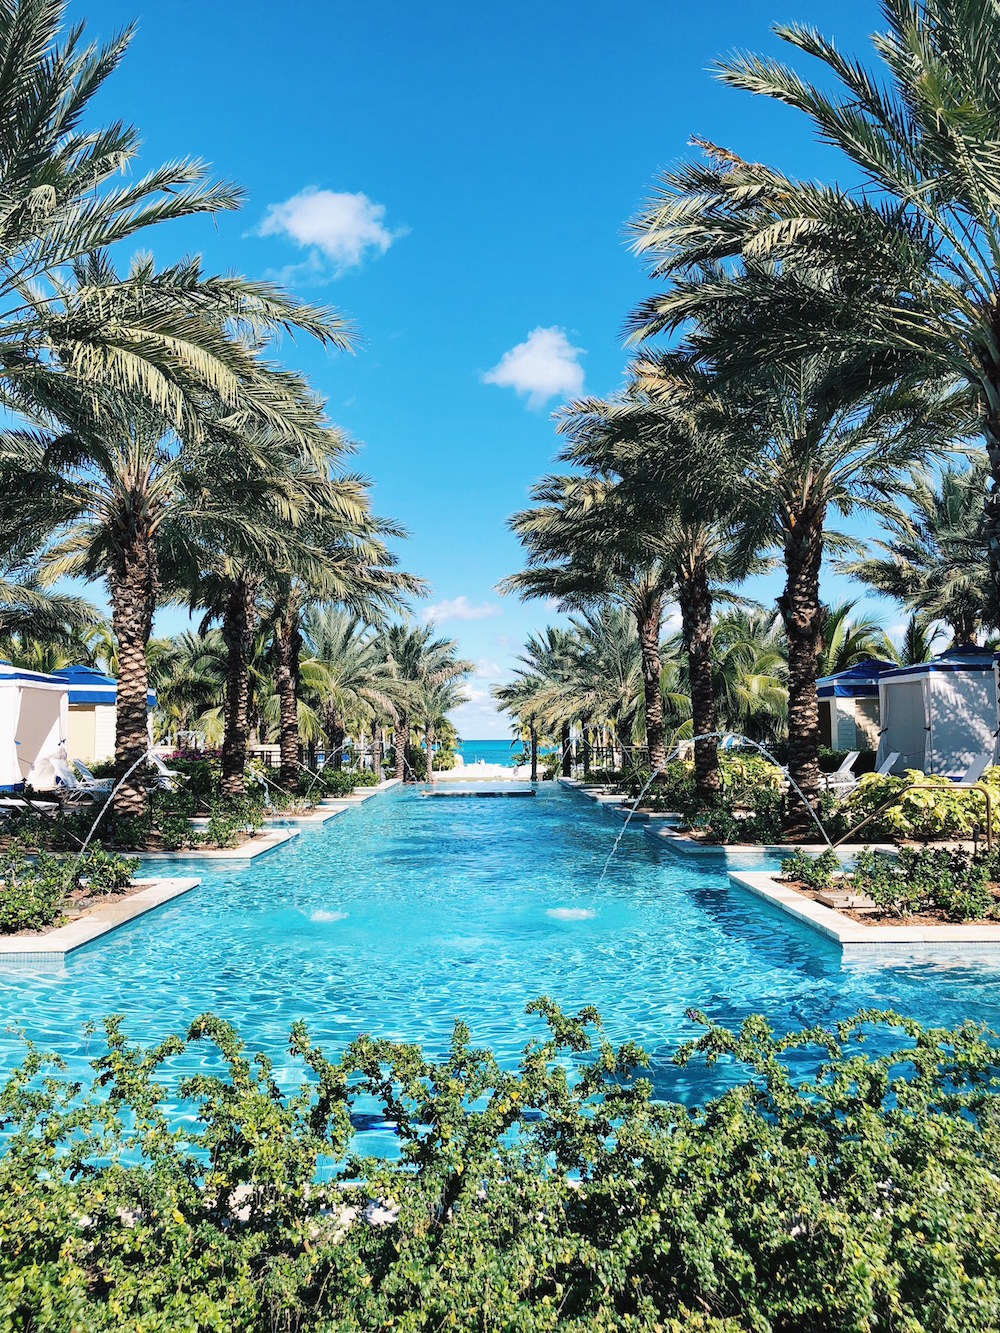 Grand Hyatt Baha Mar Bahamas resort pool palm trees